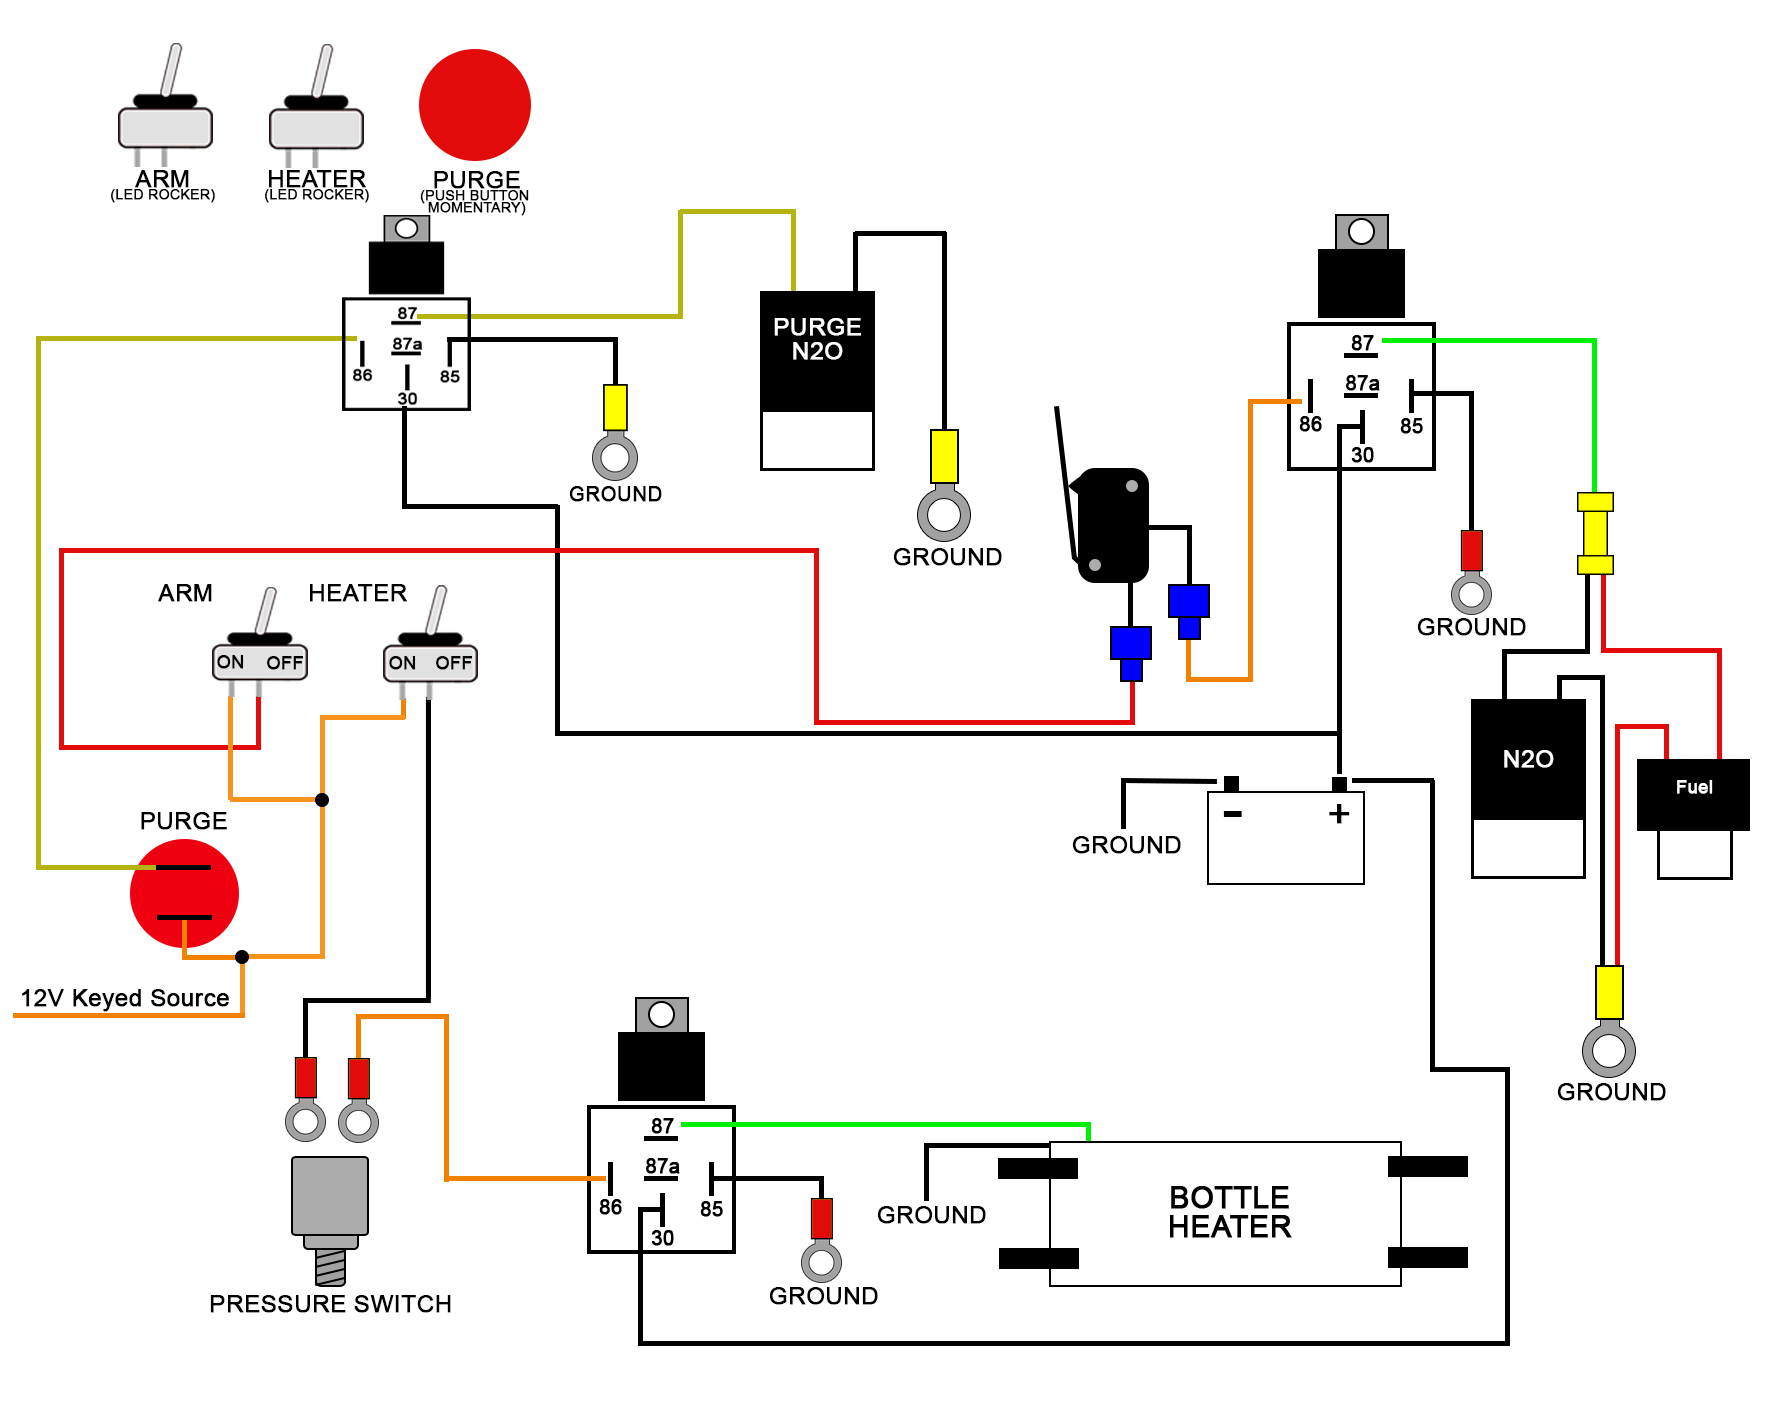 Wiring Diagrams Best Electric Wire For House Electrical Home Diagram - House Electrical Wiring Diagram